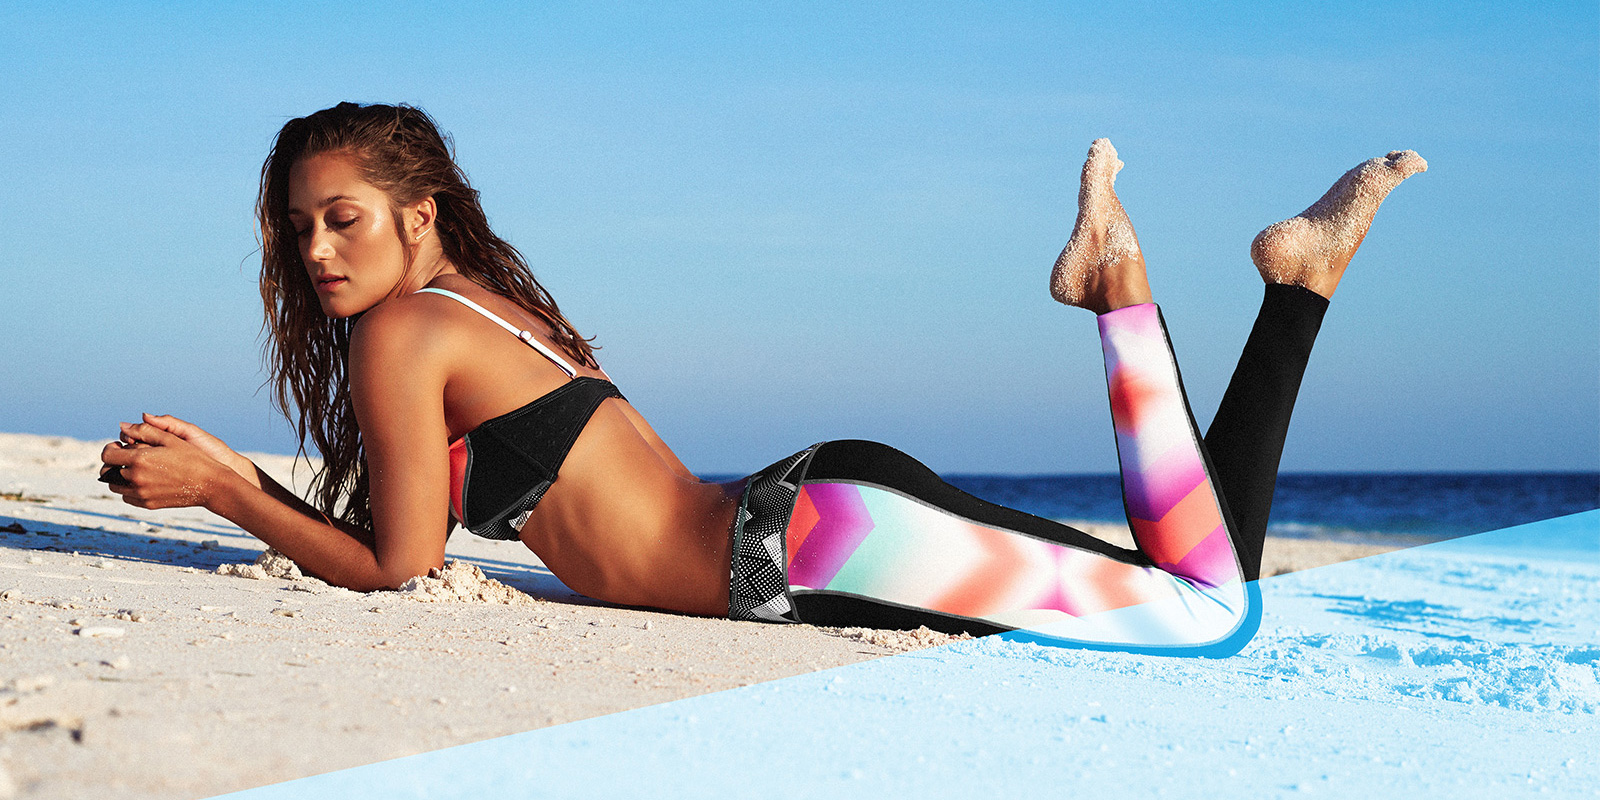 5 Reason Why You Should Wear Leggings for Kiting